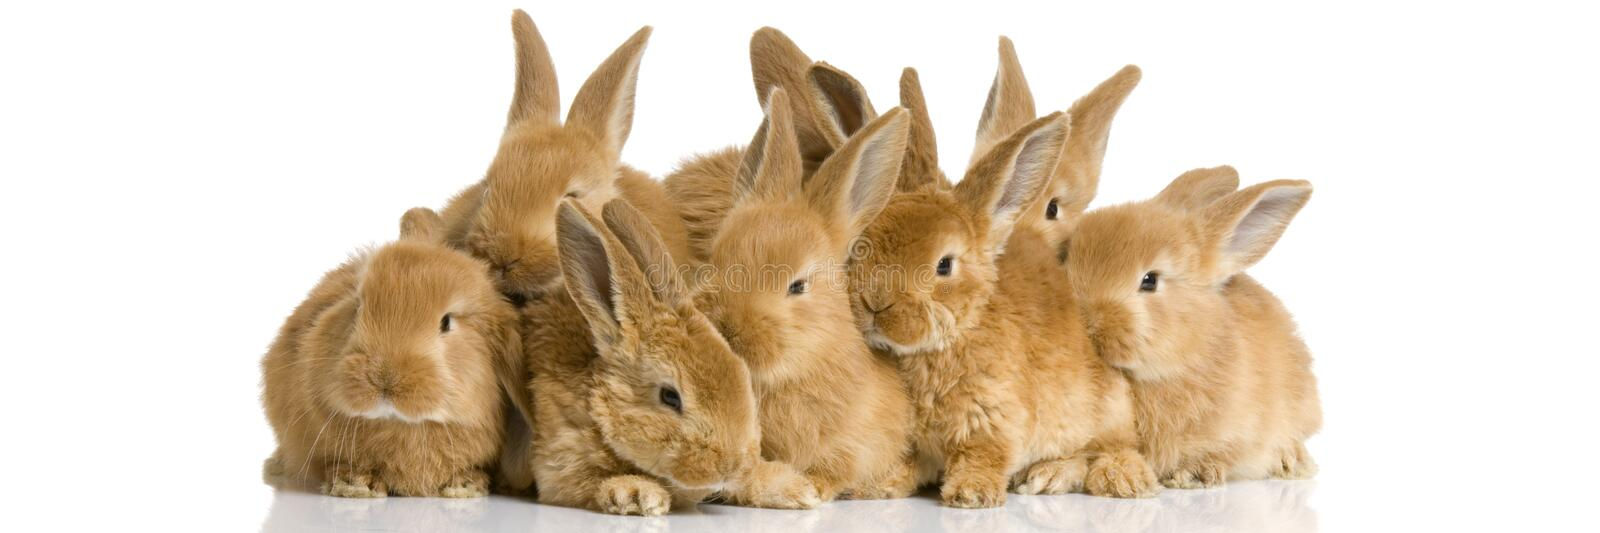 Group of bunnies stock image